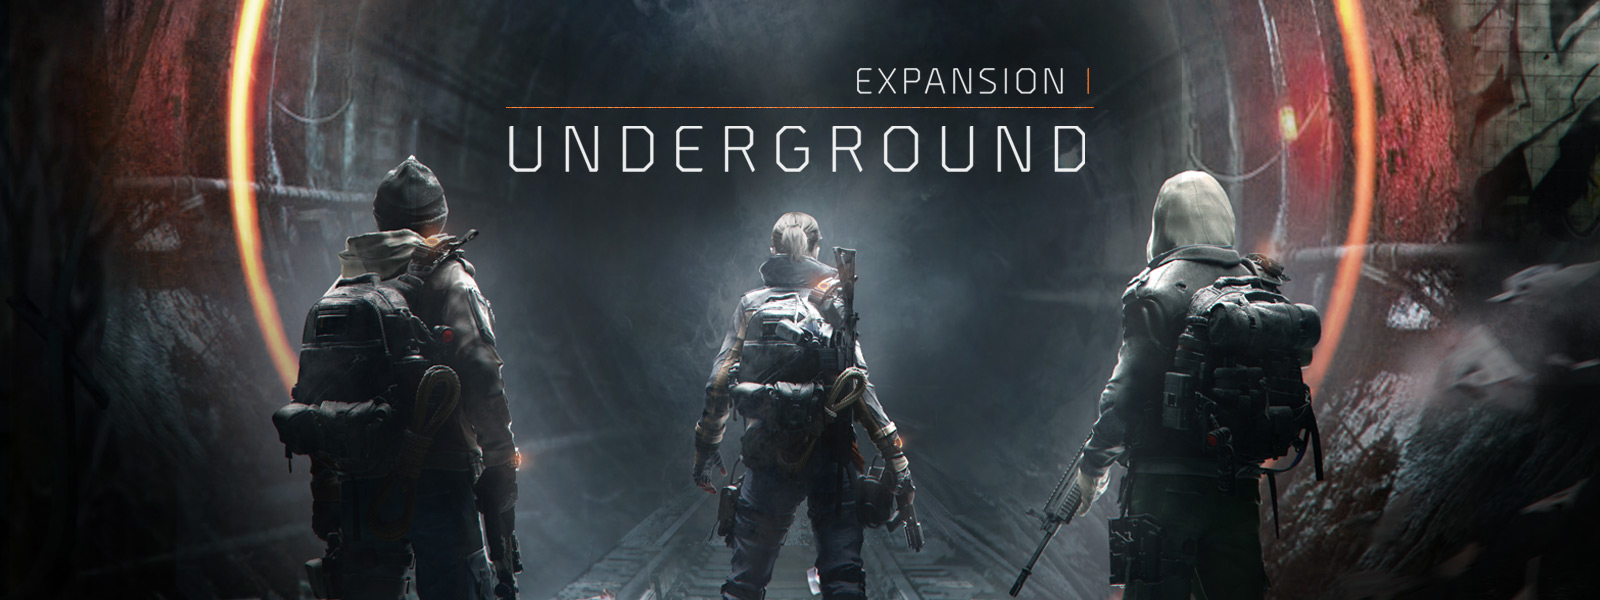 Expansion I: Underground